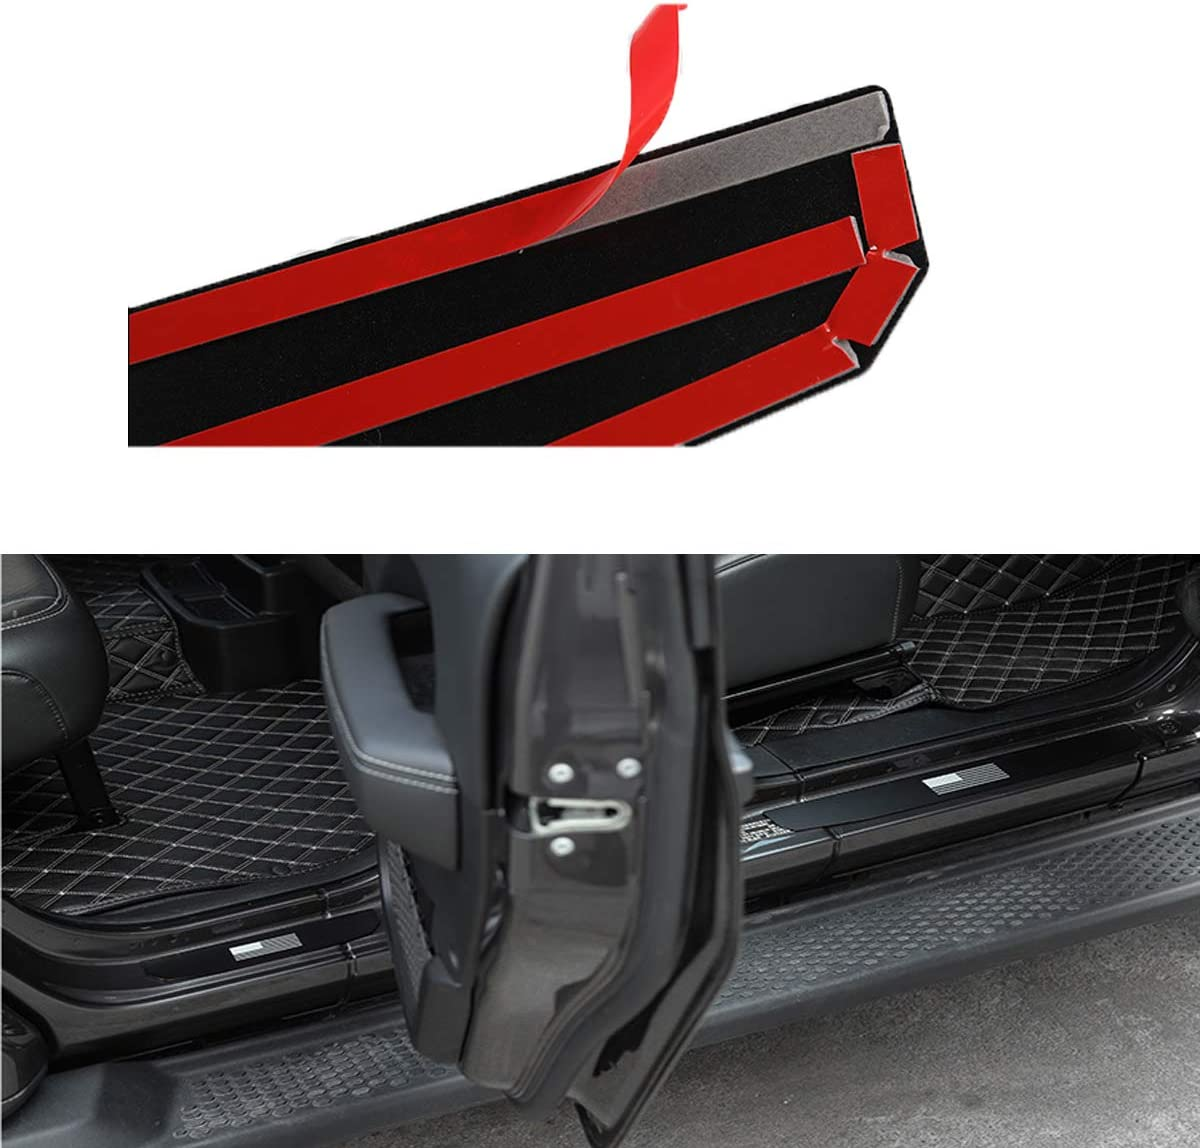 for Jeep Wrangler JL Scuff Plate Entry Guard Door Sill Protectors Alumnium Alloy Protection Strip 2018 2019 2020 2 Door Wlys 1941